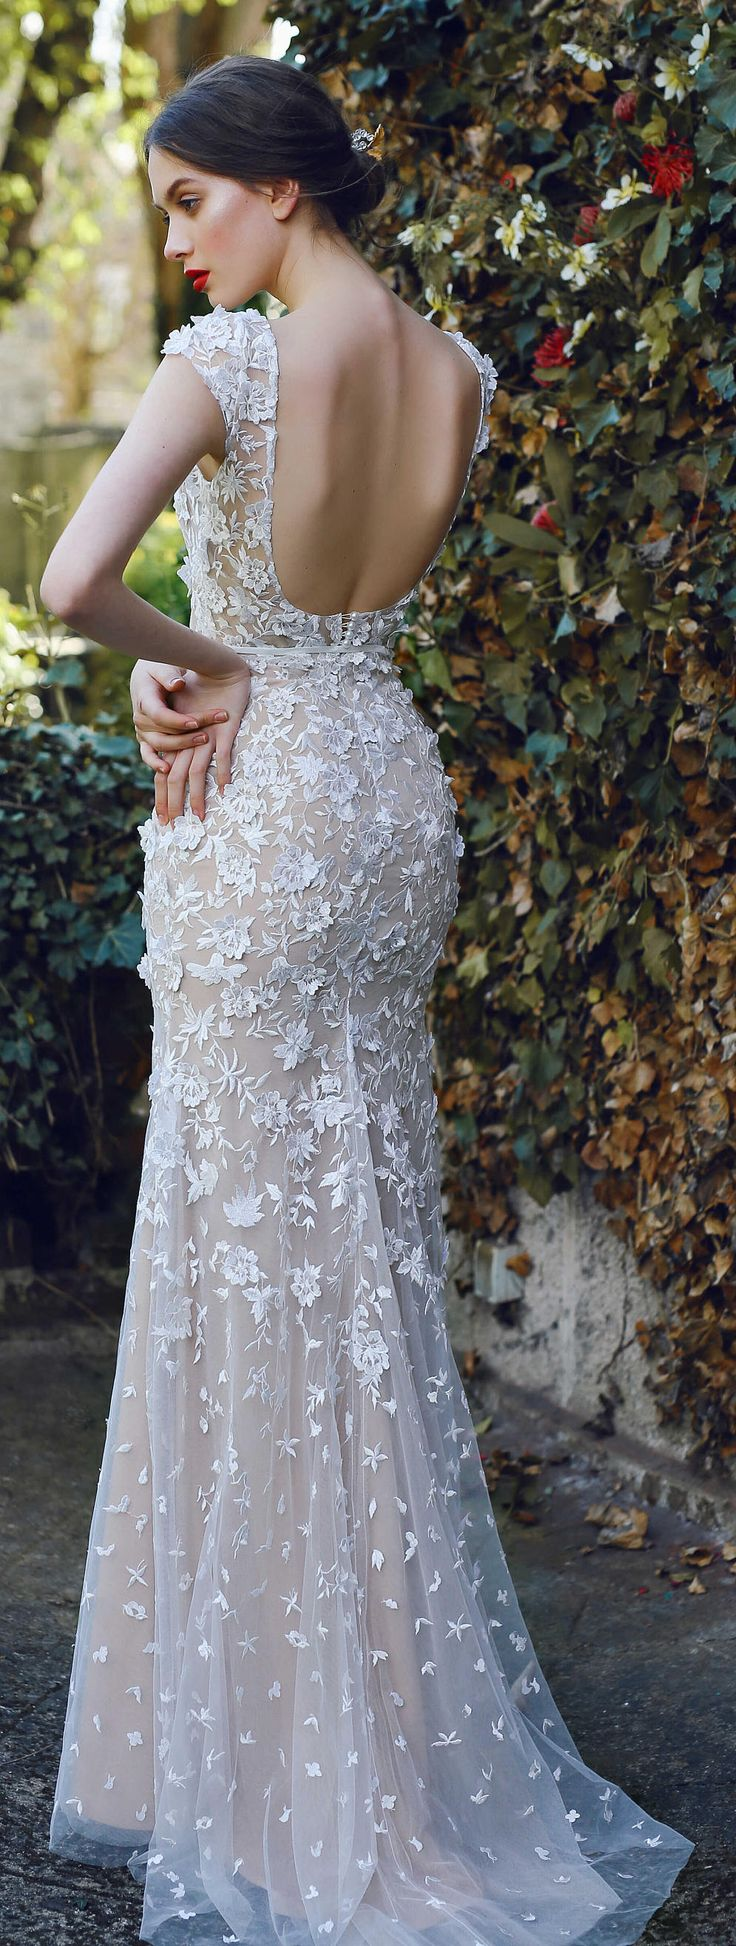 Bridal gown VELARI, wedding dress, unique wedding gown, lace wedding, simple wedding dress, bride dress, lace gown, boho wedding dress